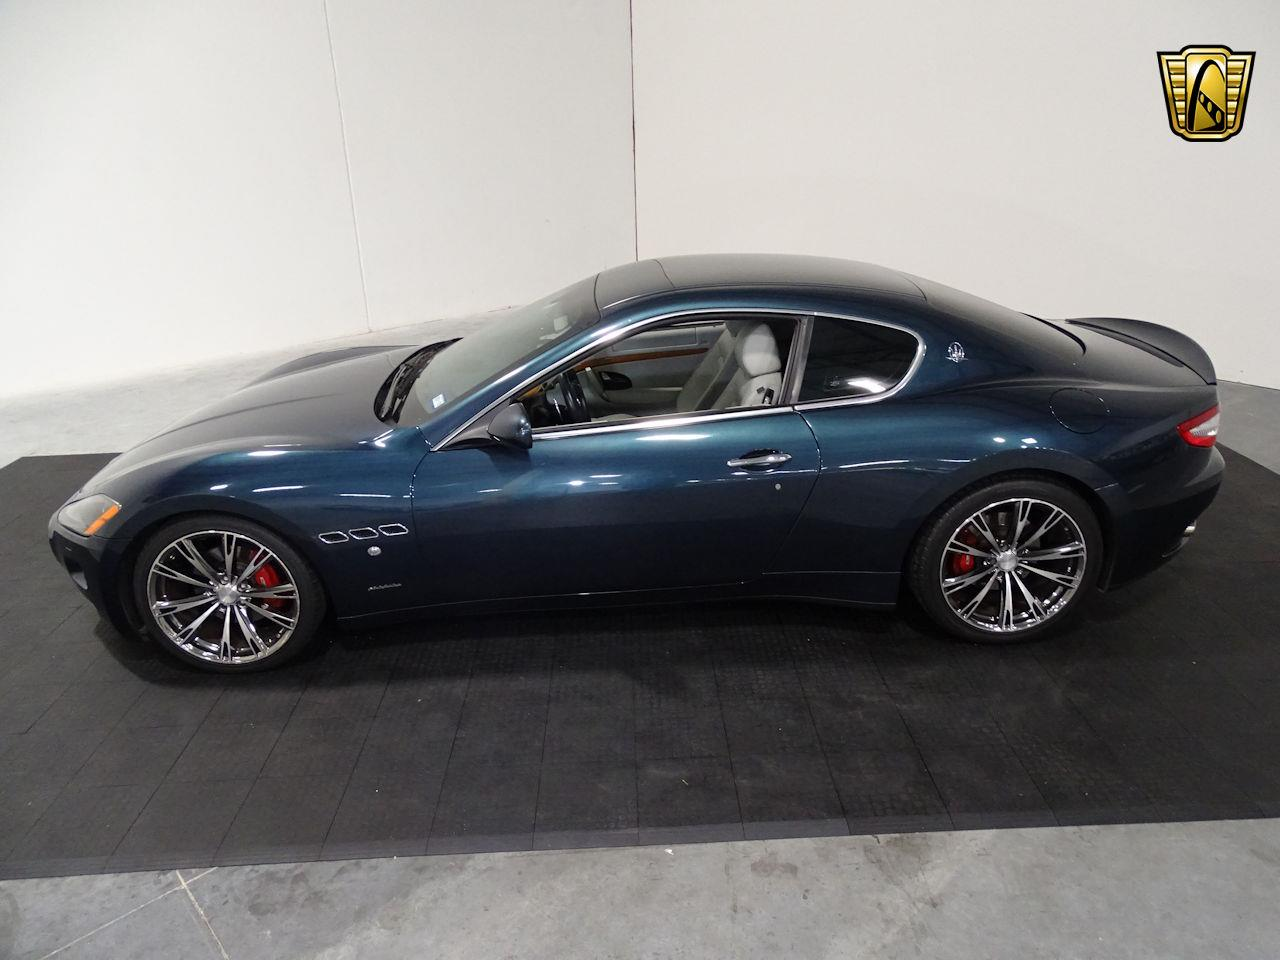 Large Picture of '08 Maserati GranTurismo Offered by Gateway Classic Cars - Houston - MO4H